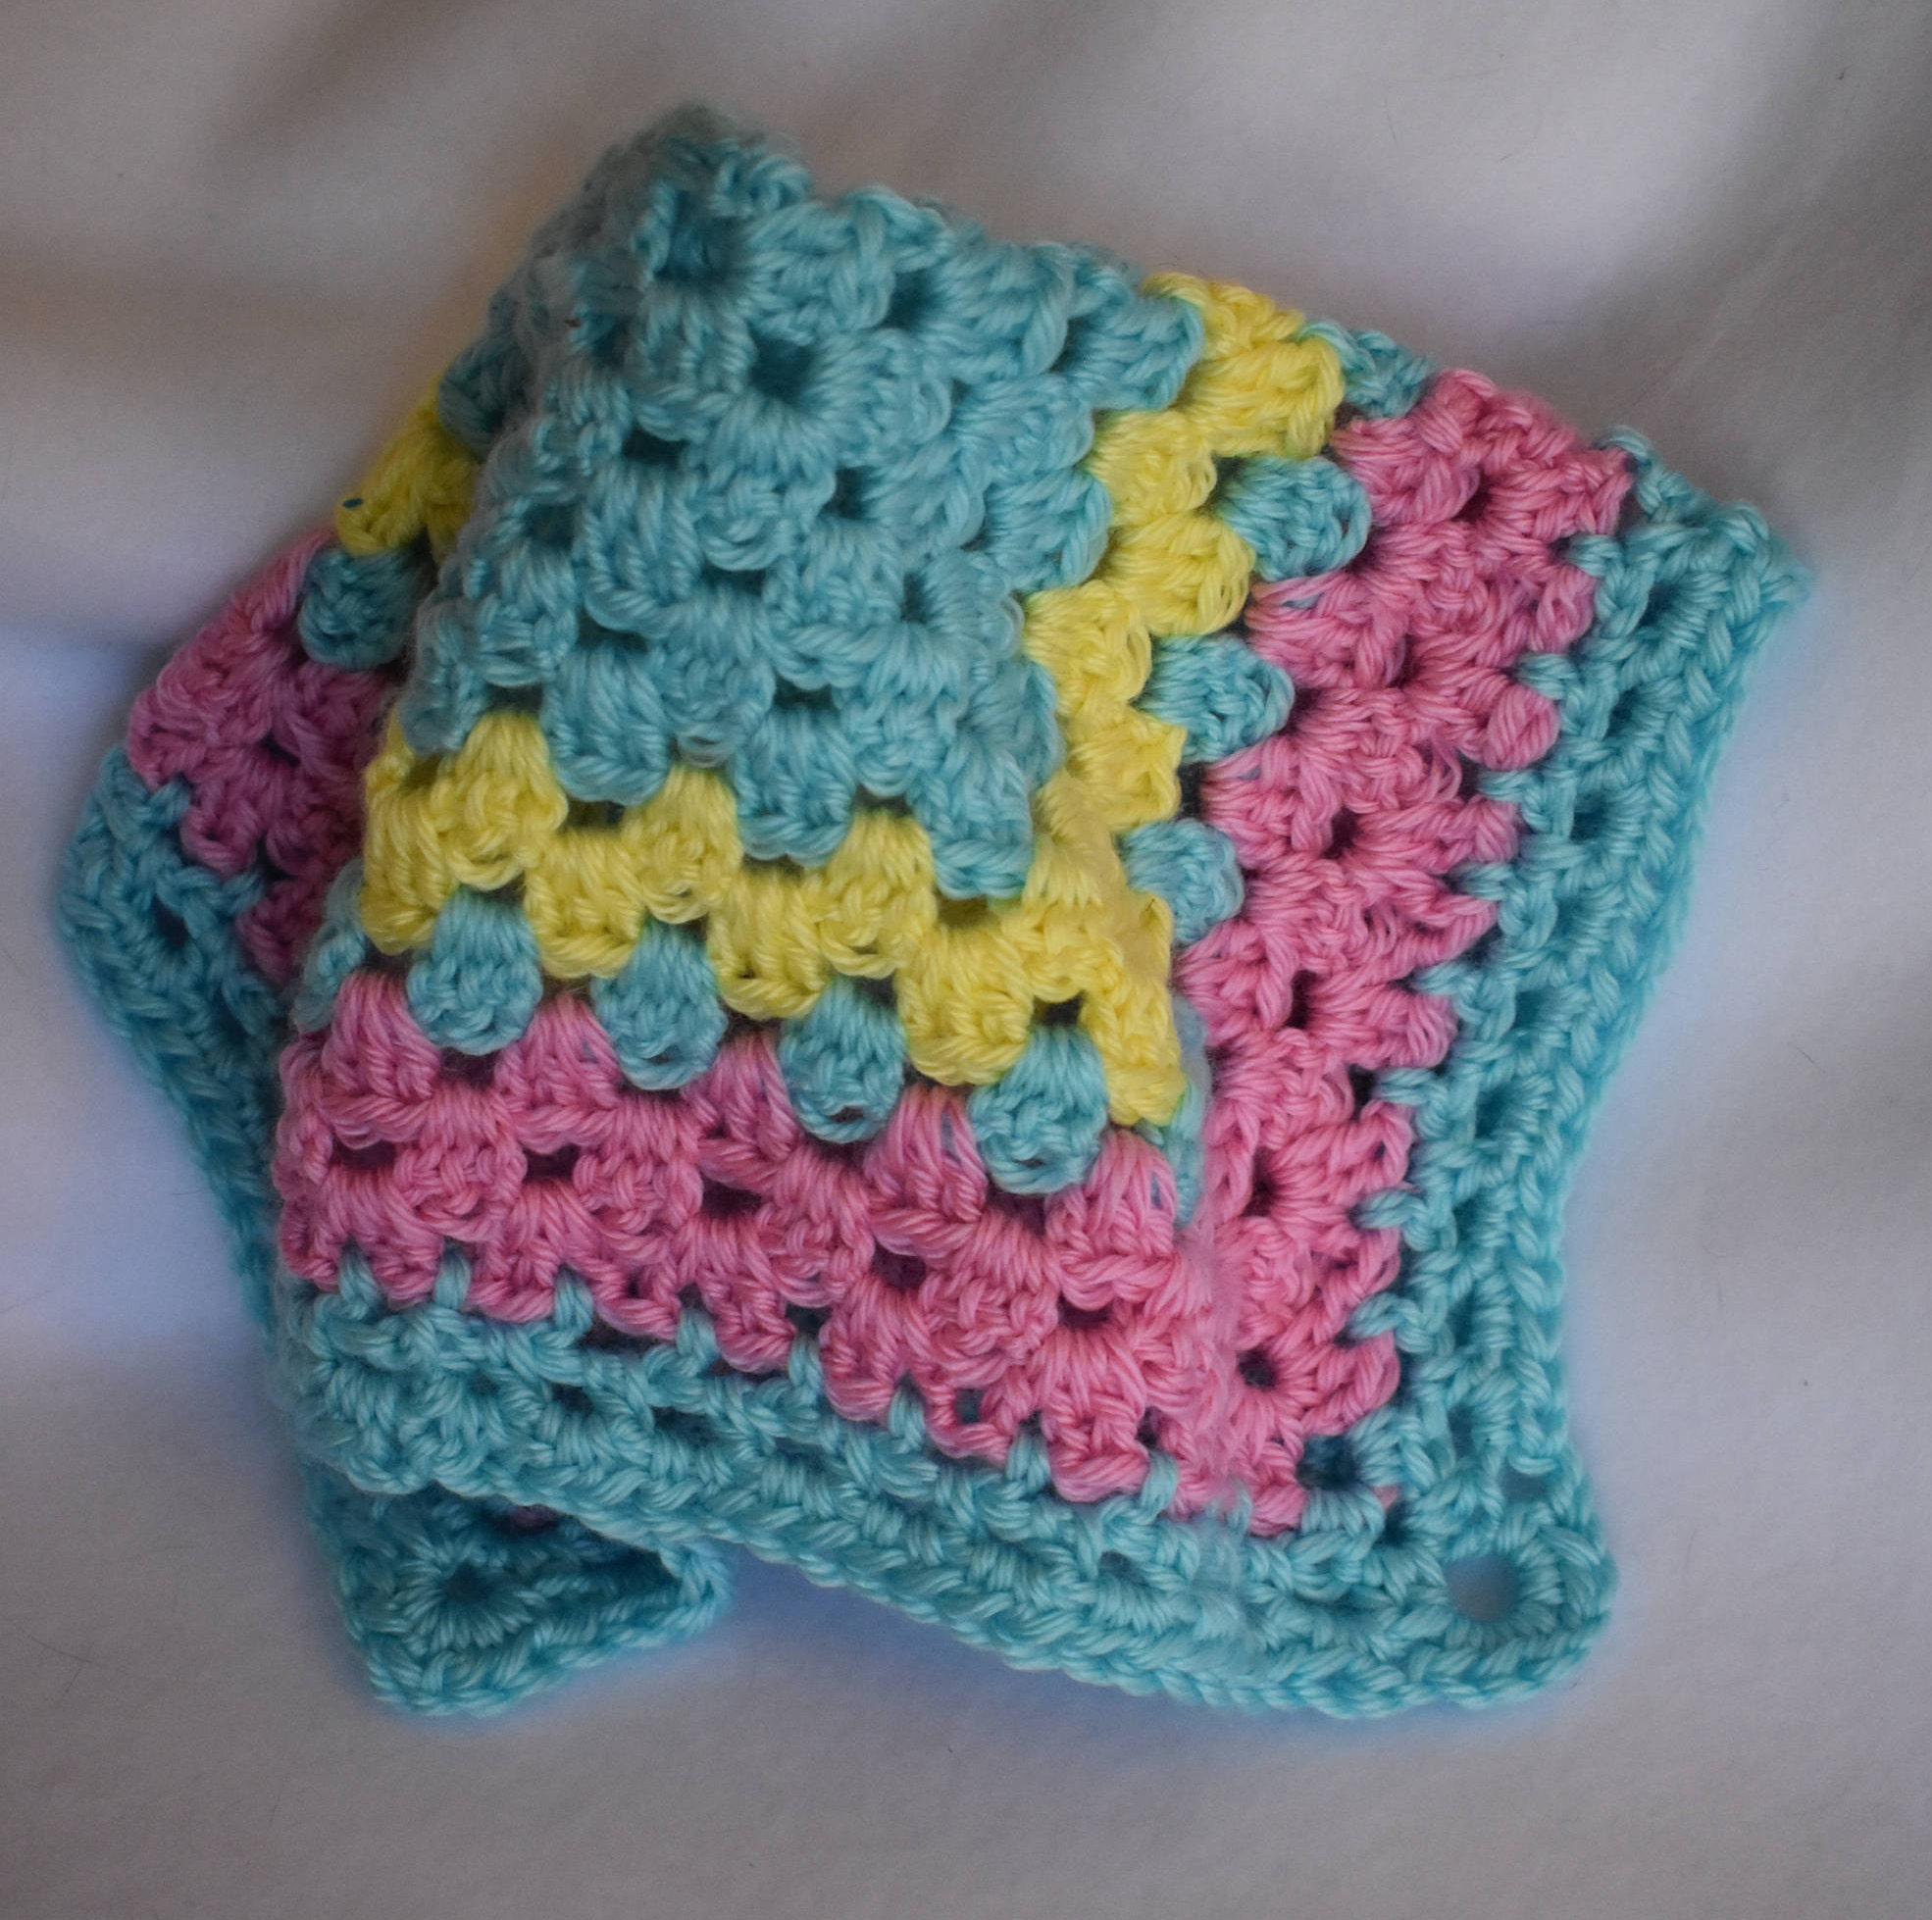 Crochet Cat Blanket Patterns You'll Love | The WHOot | 1958x1970